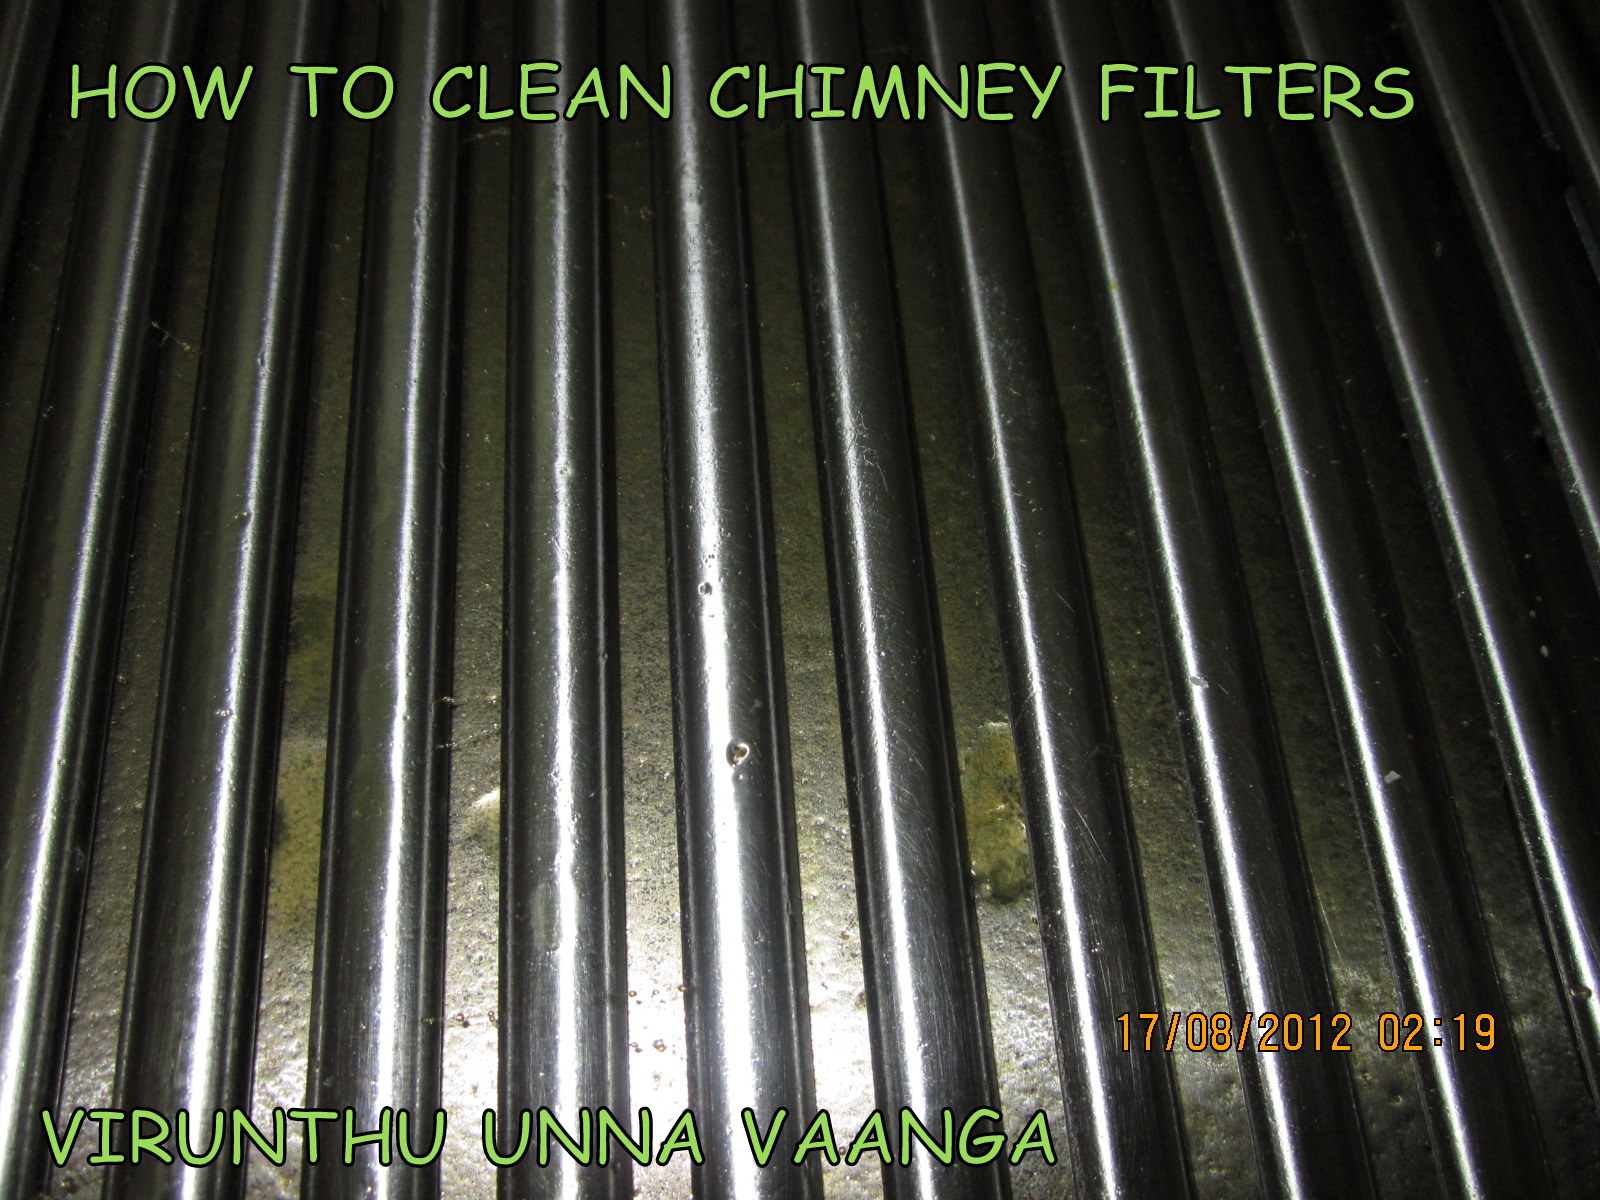 ordinary How To Clean Kitchen Chimney Grease #6: Keep the metal tray on your sink and keep the filters in the tray.